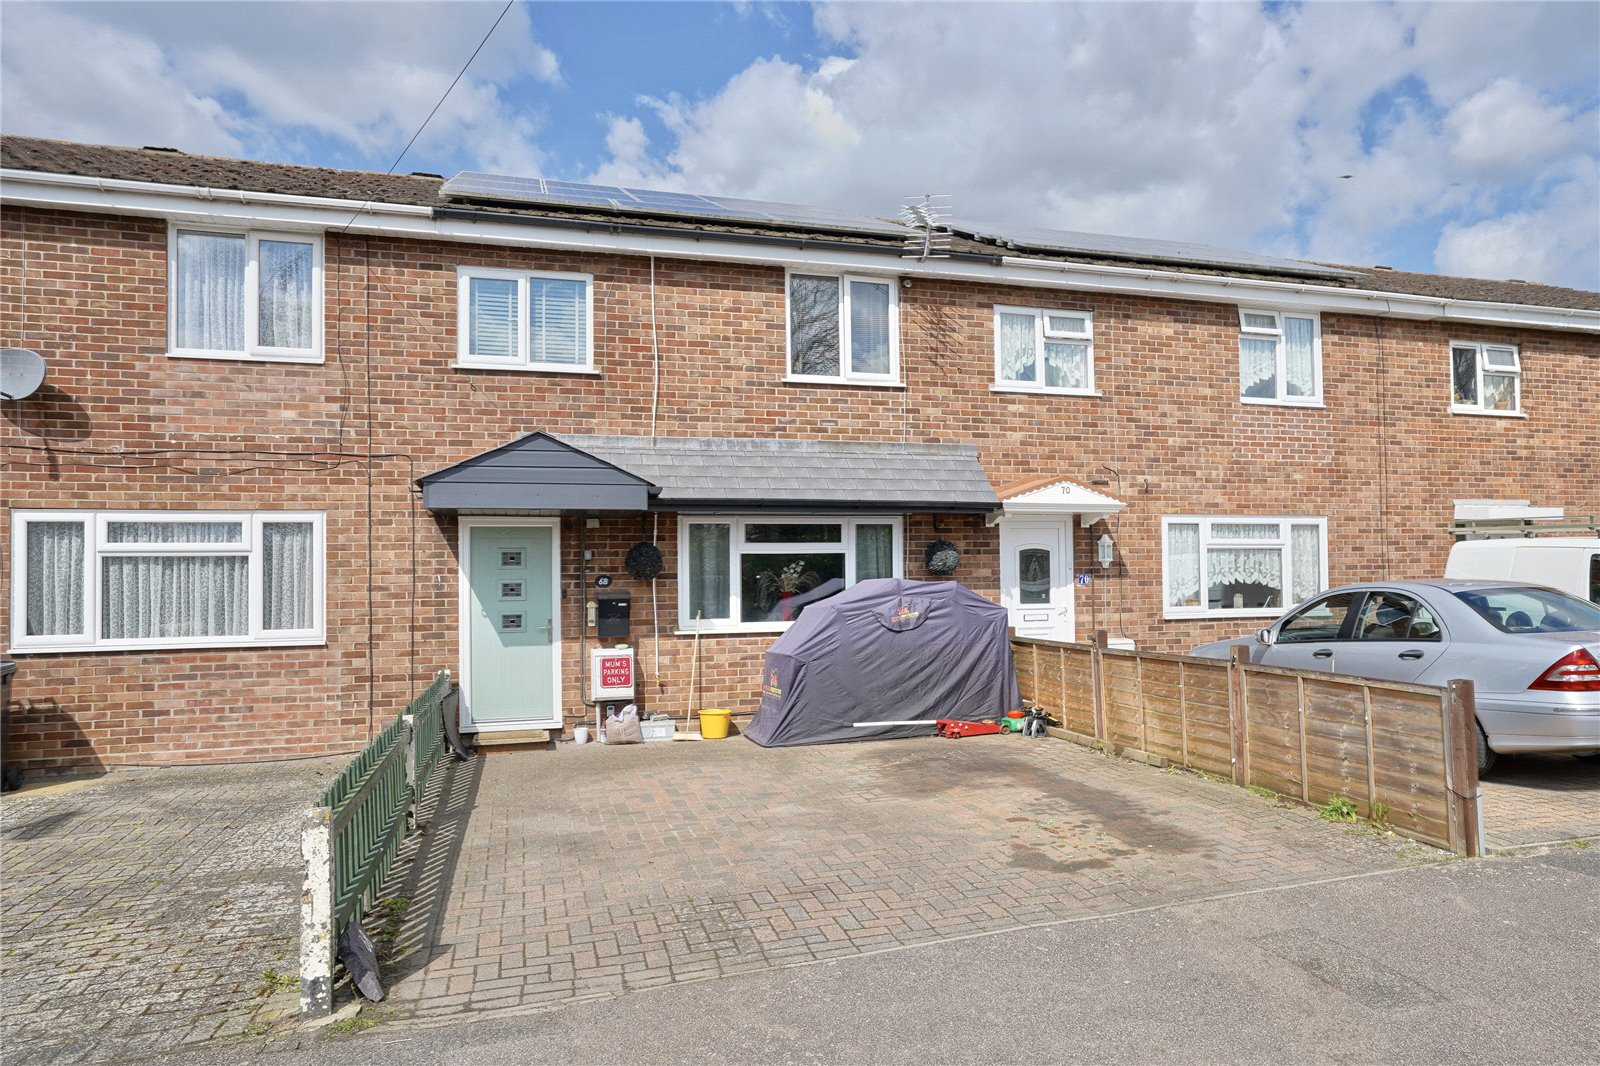 3 bed house for sale in St. Neots, PE19 2EA, PE19